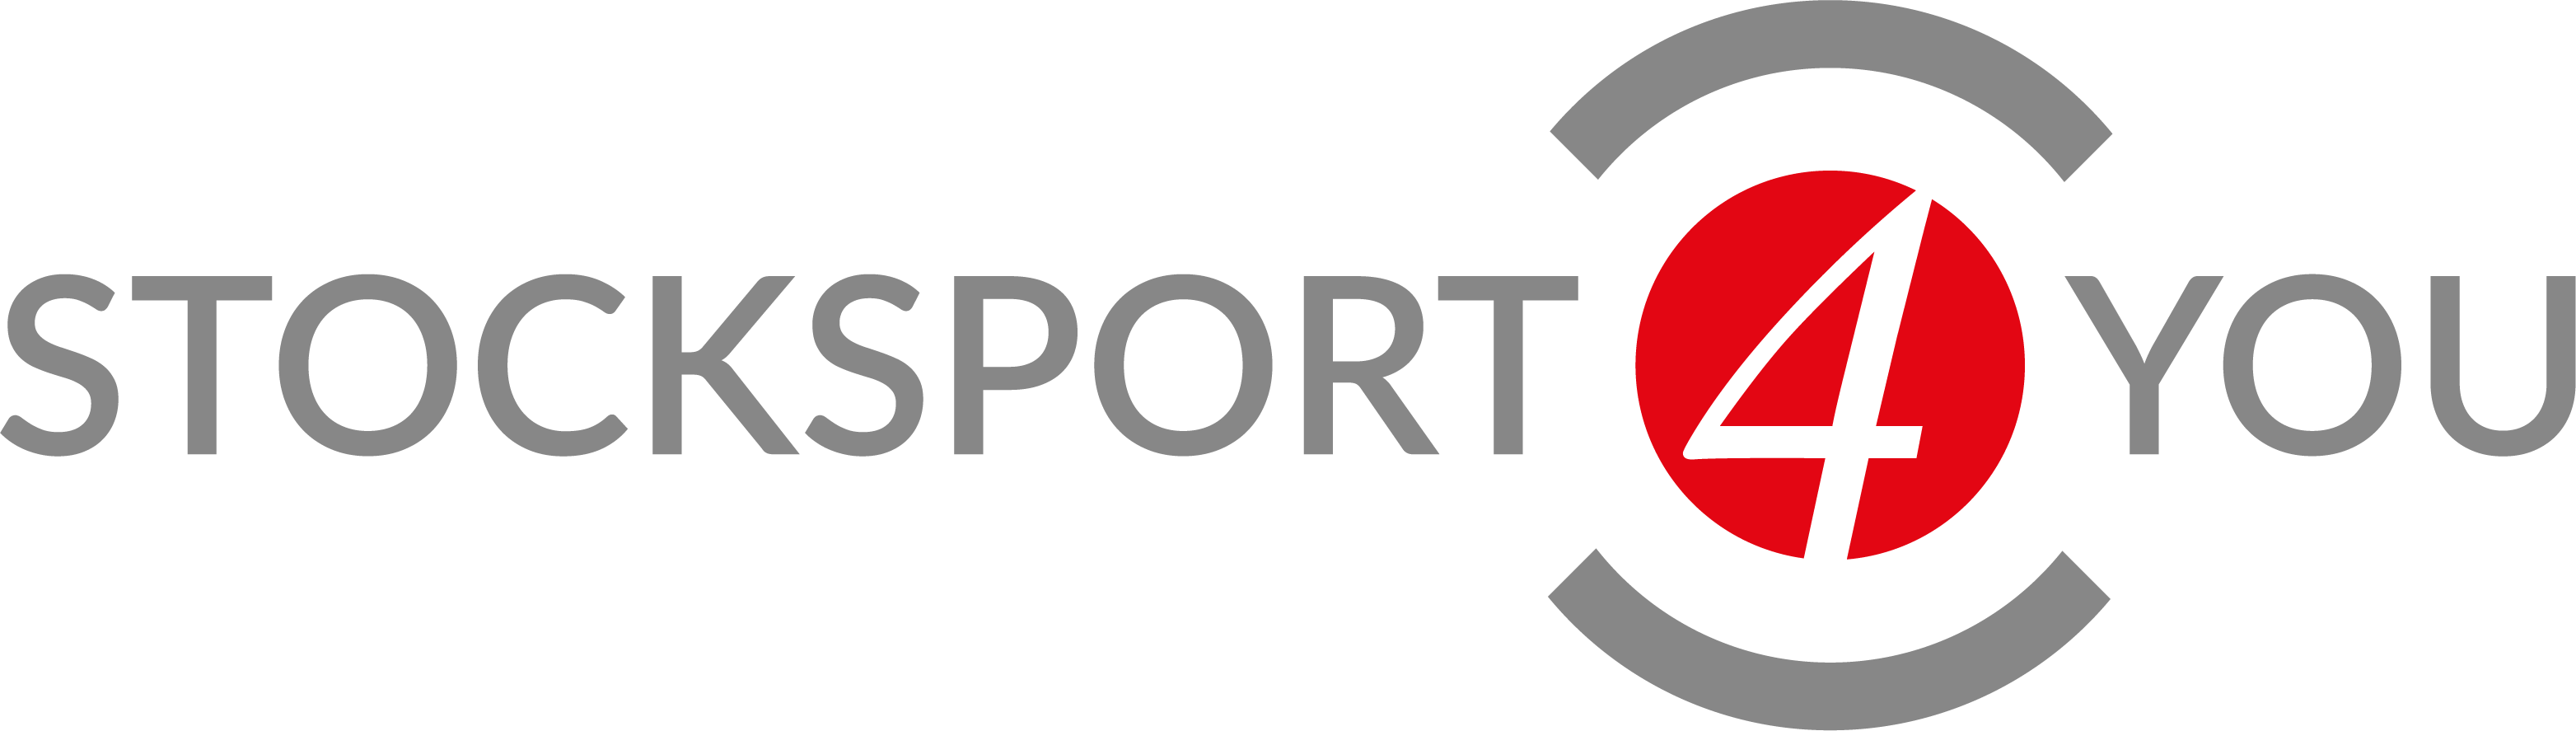 Stocksport4you-Logo